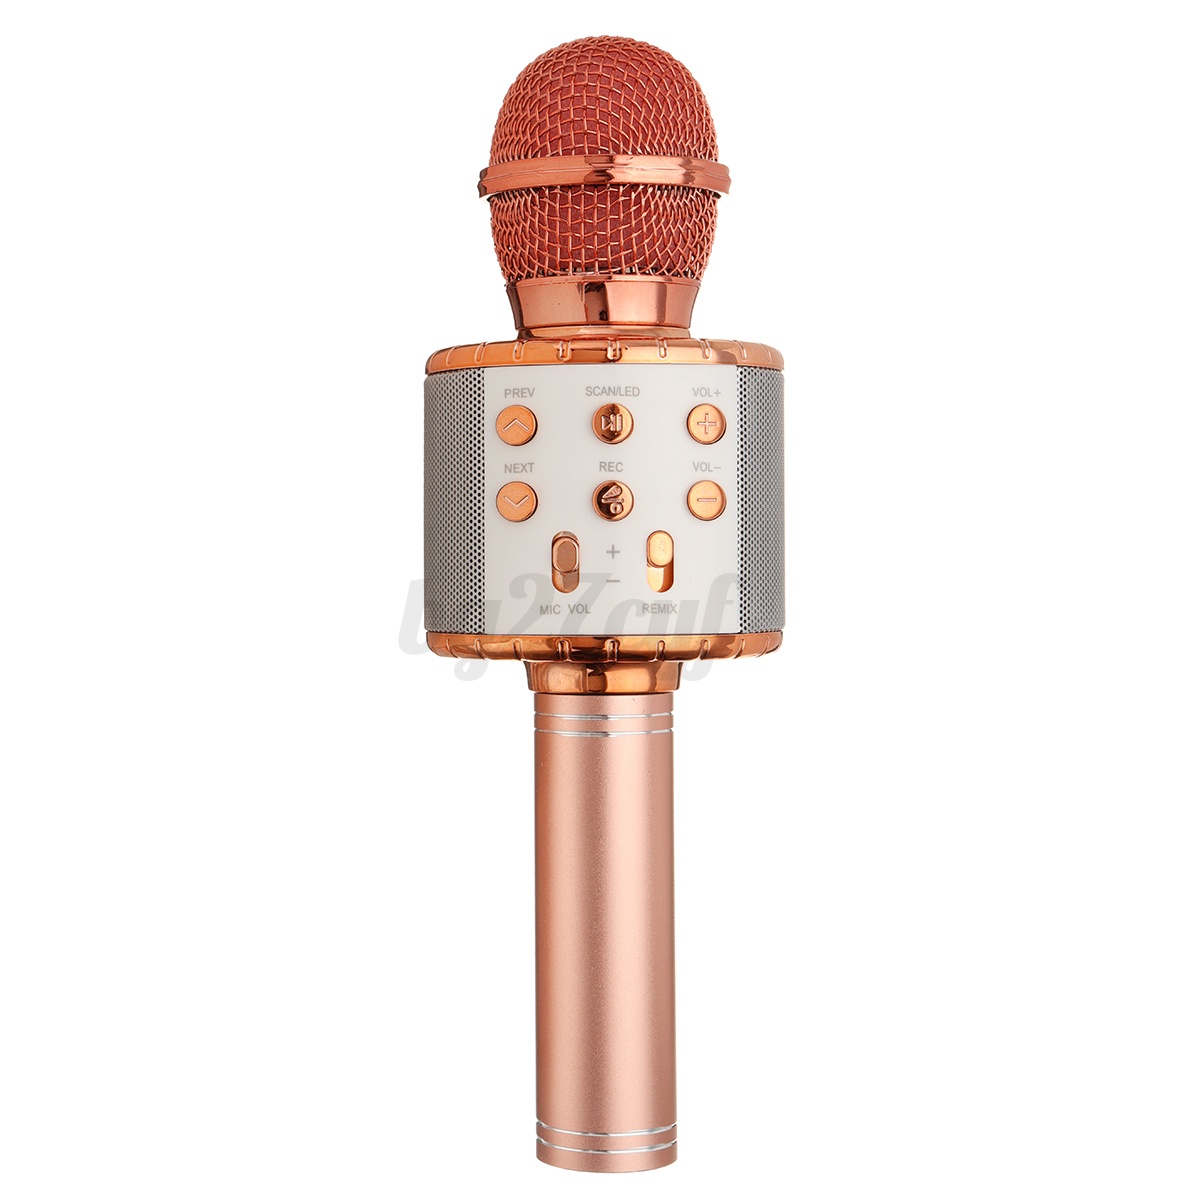 Wireless-Handheld-Microphone-bluetooth-KTV-Karaoke-Stereo-Player-For-iPhone-iPad thumbnail 13